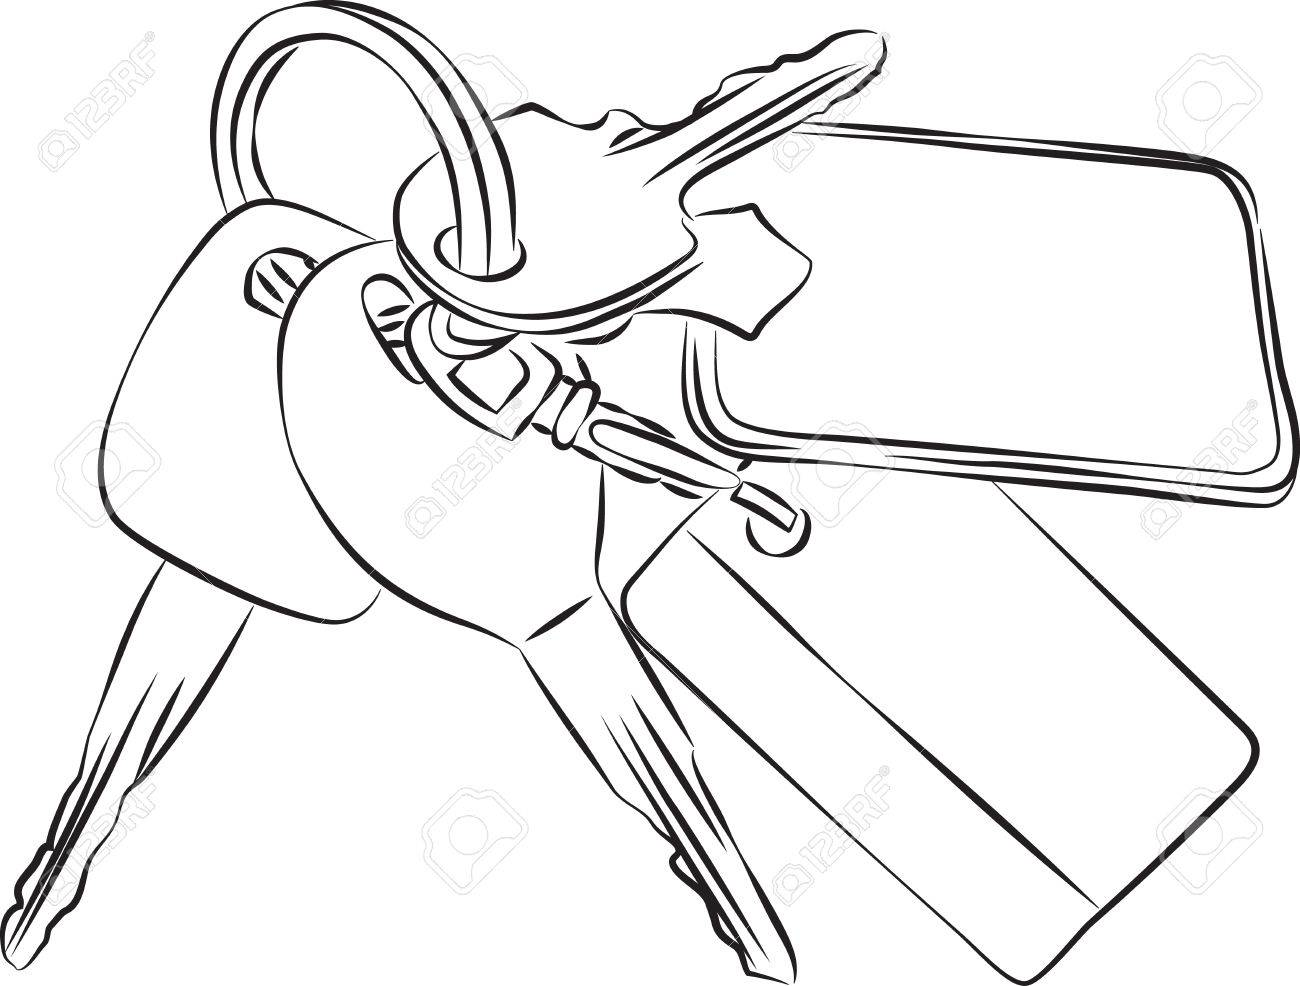 1300x986 Sketched Line Drawing Of A Set Of Keys On A Keyring Or Keychain